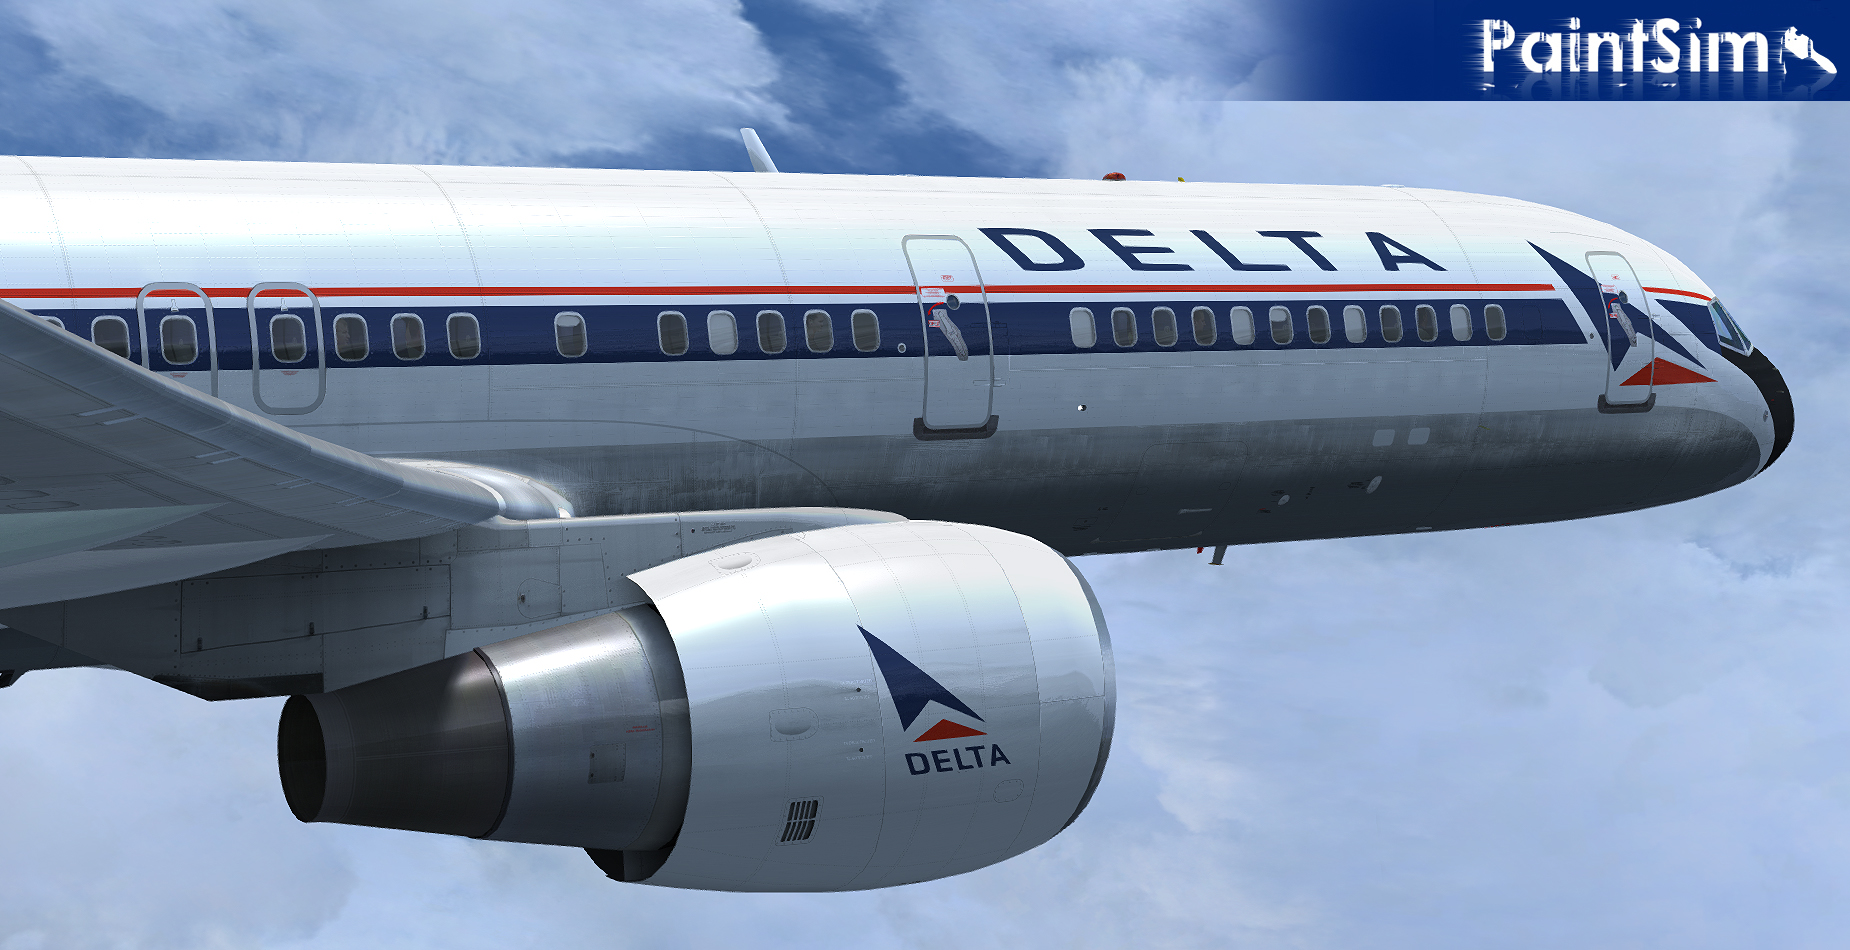 PAINTSIM - UHD TEXTURE PACK 14 FOR CAPTAIN SIM BOEING 757-200 III FSX P3D